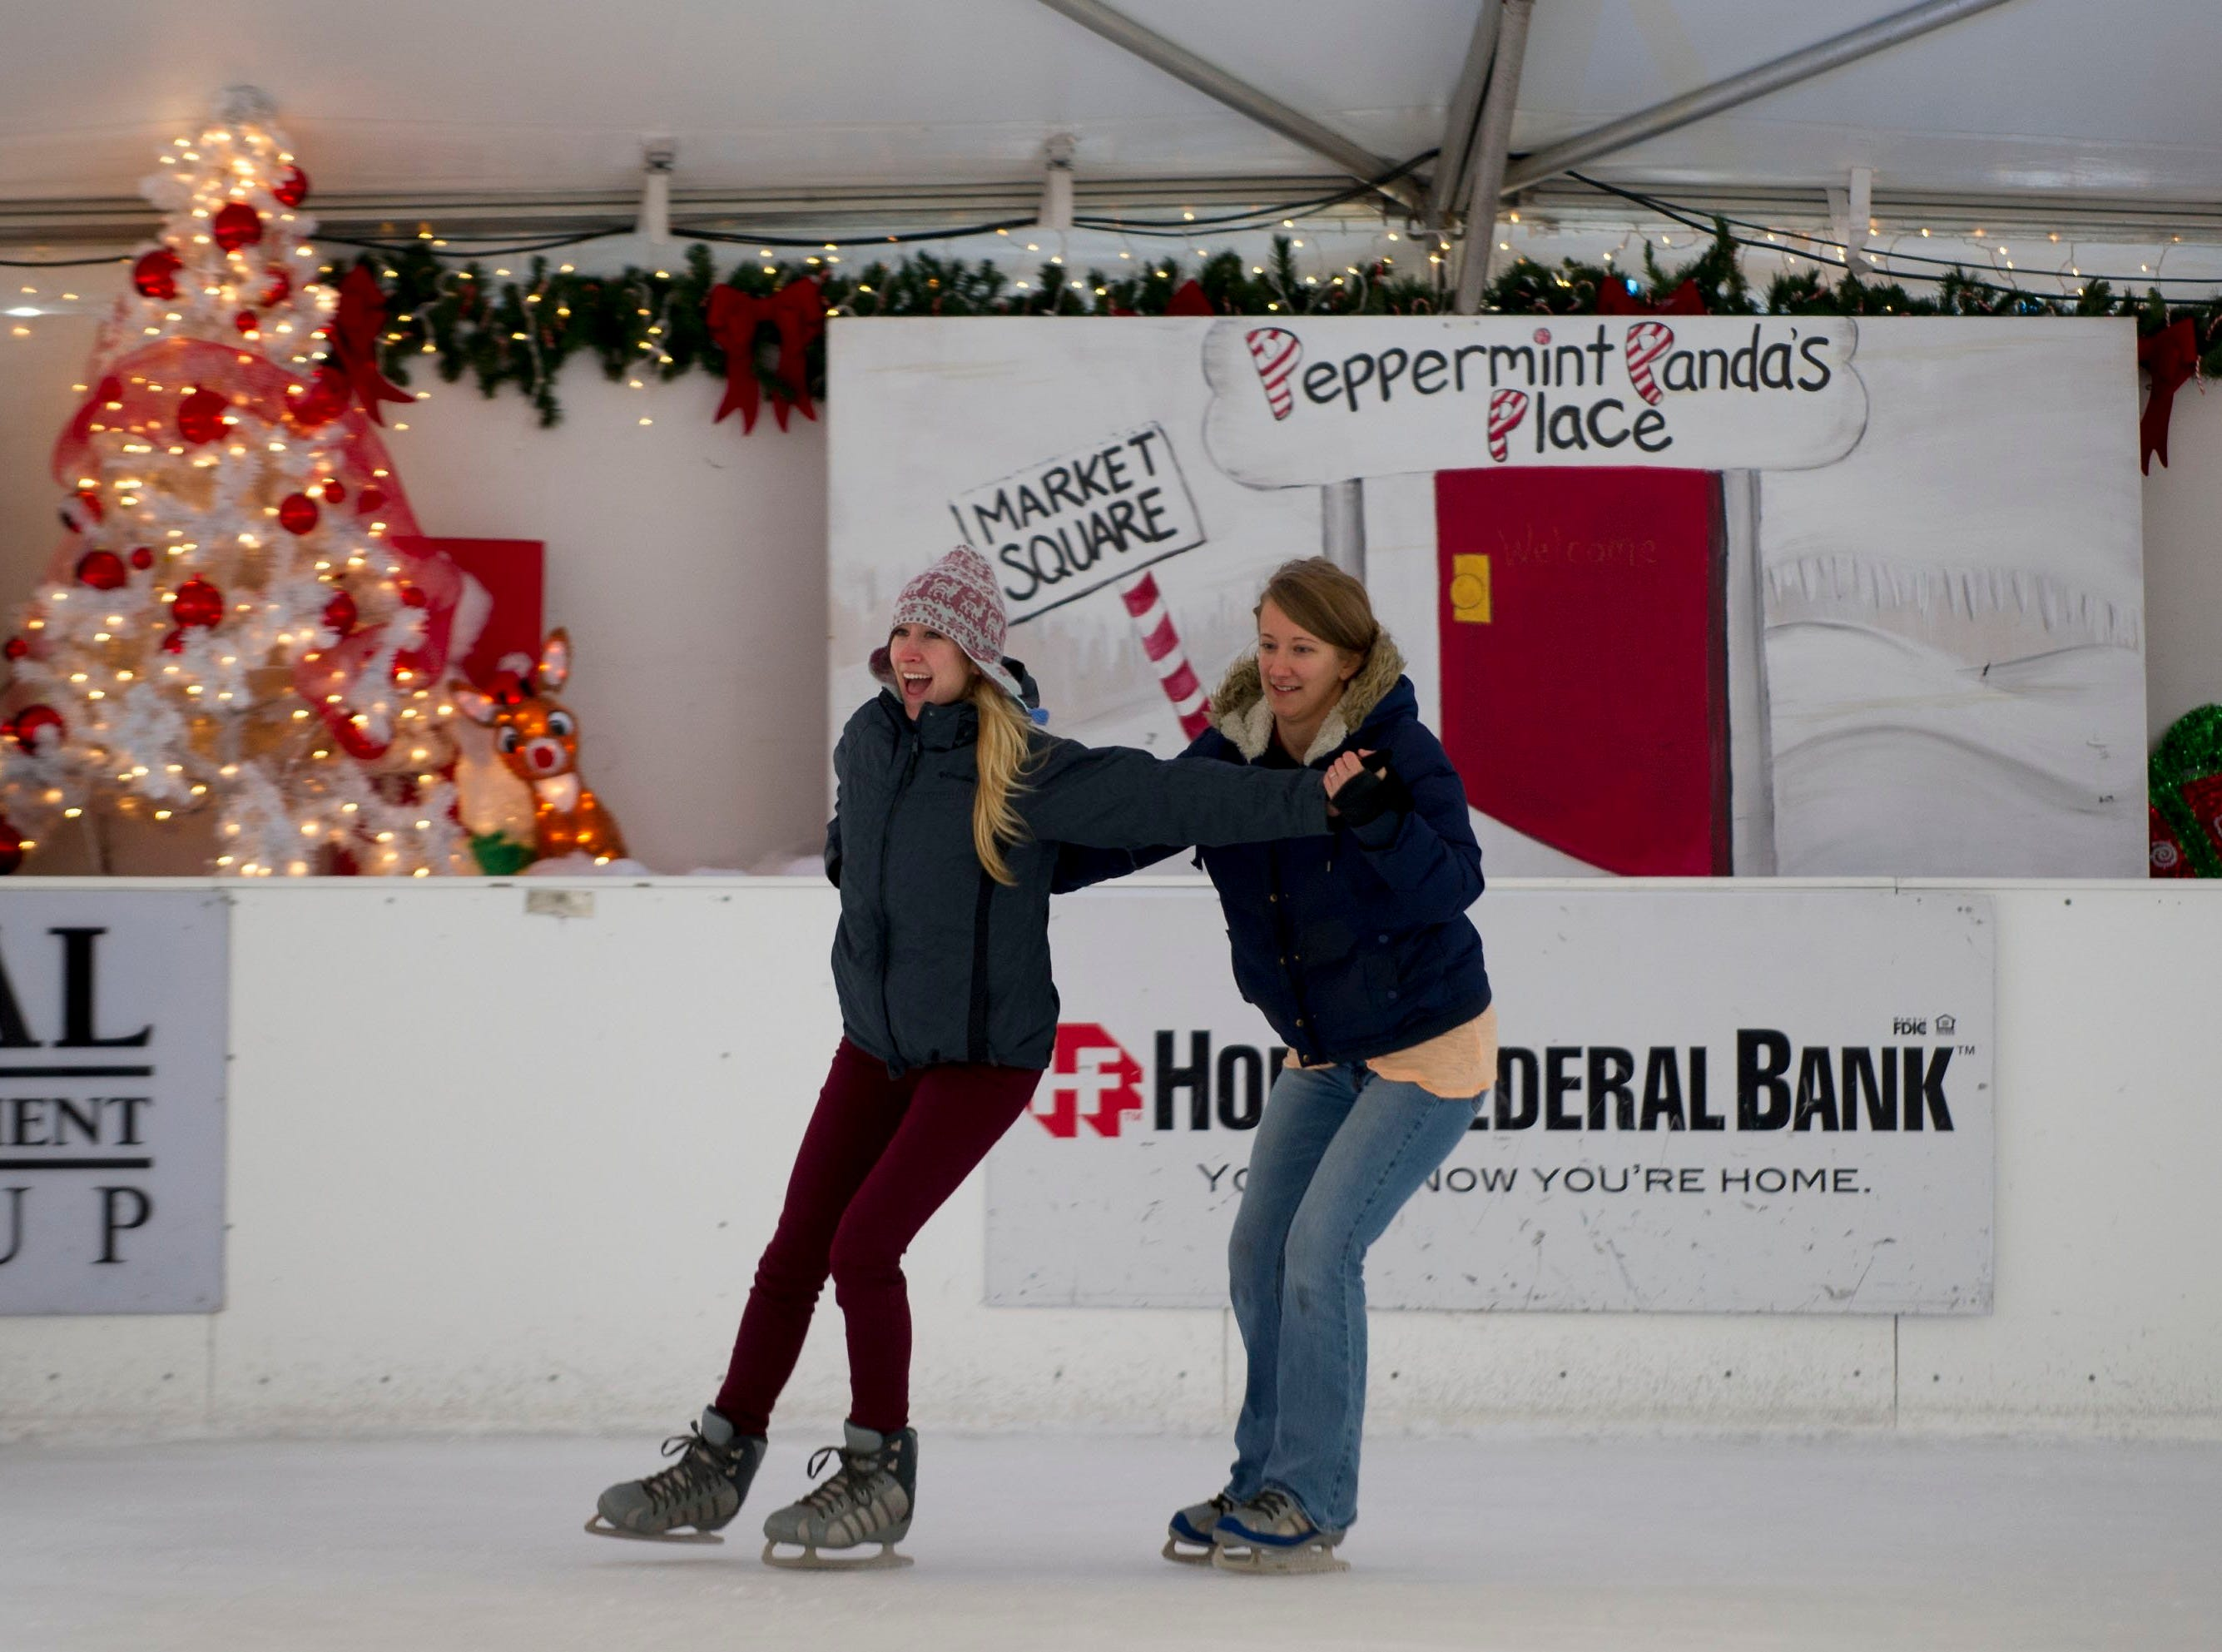 Sisters Erica Sladky, left and Tegan Sladky, right show off their skating skill at the outdoor ice skating rink on Market Square in downtown Knoxville Tuesday December 24, 2013.